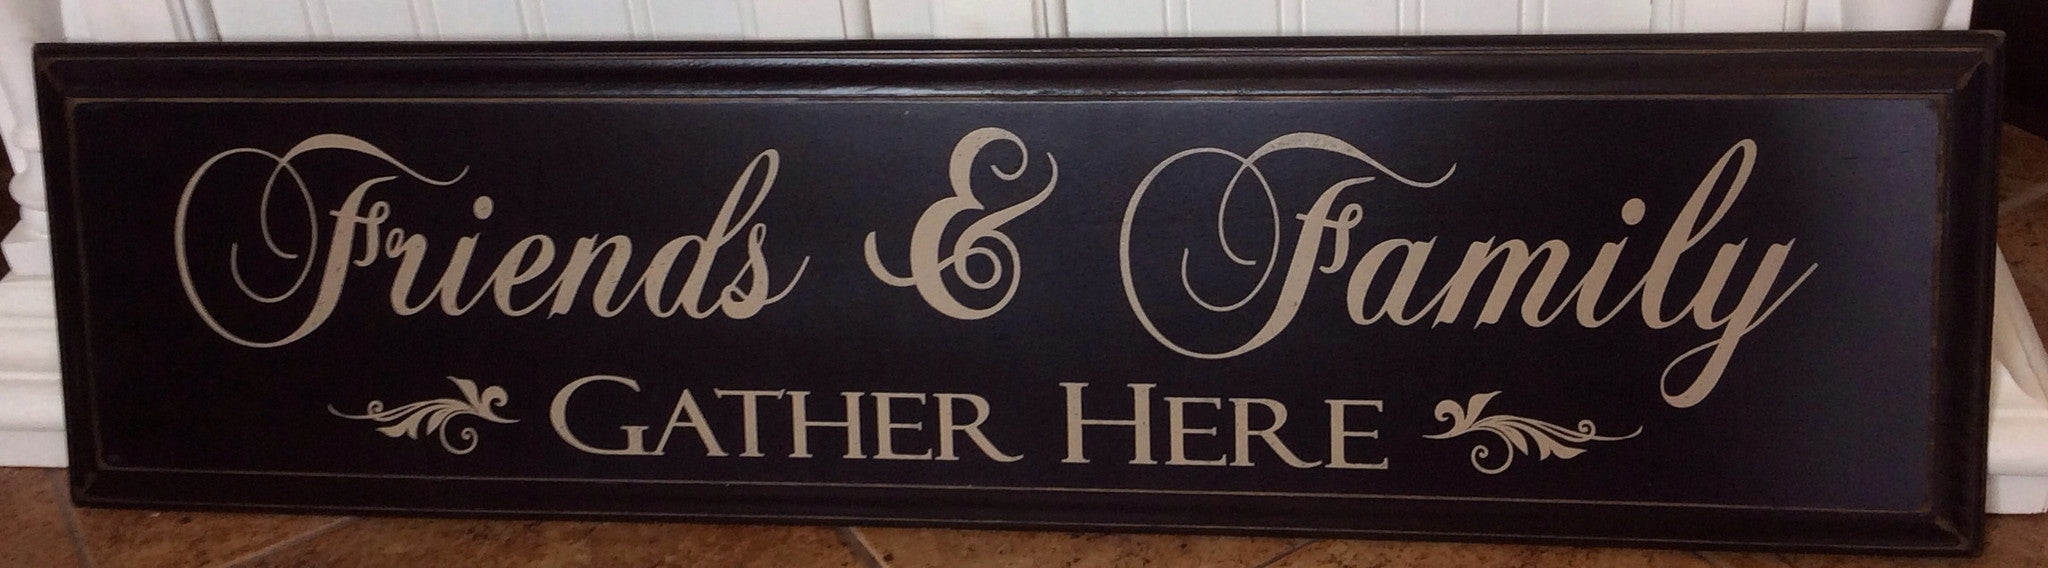 Friends And Family Gather Here Painted Wood Sign With